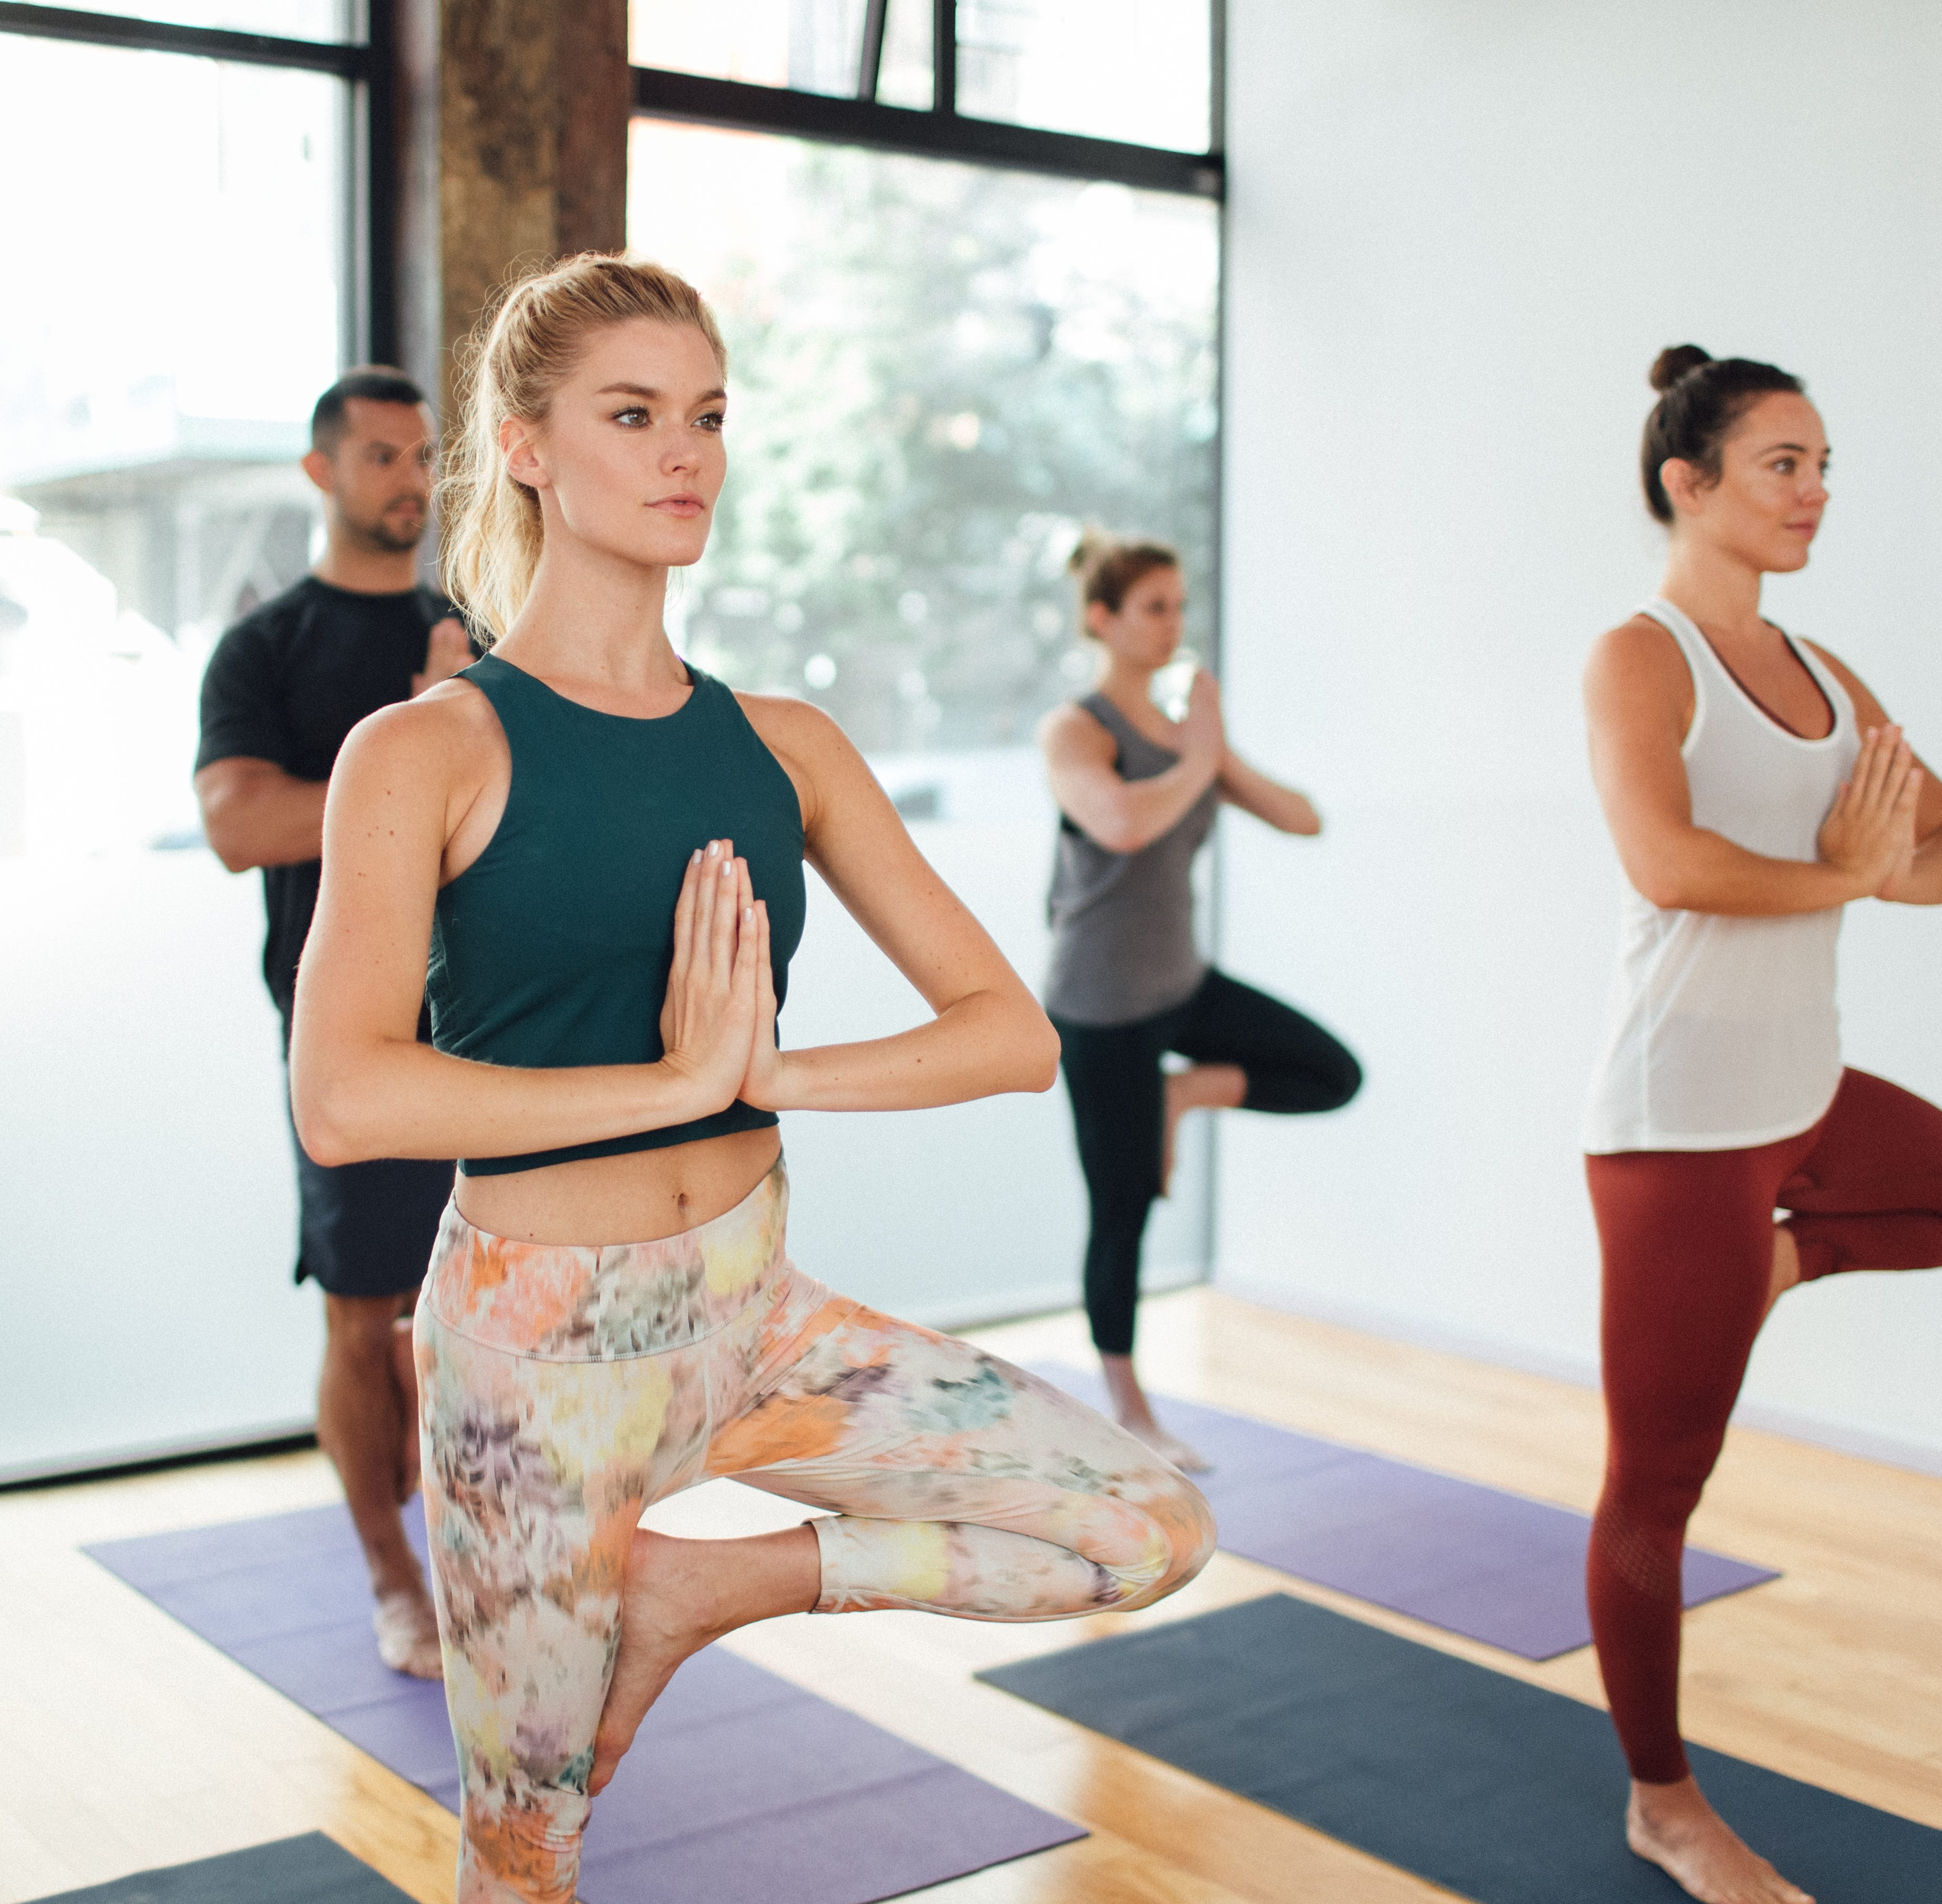 Kickboxing today, yoga tomorrow: ClassPass aims to bring variety to Memphis' fitness